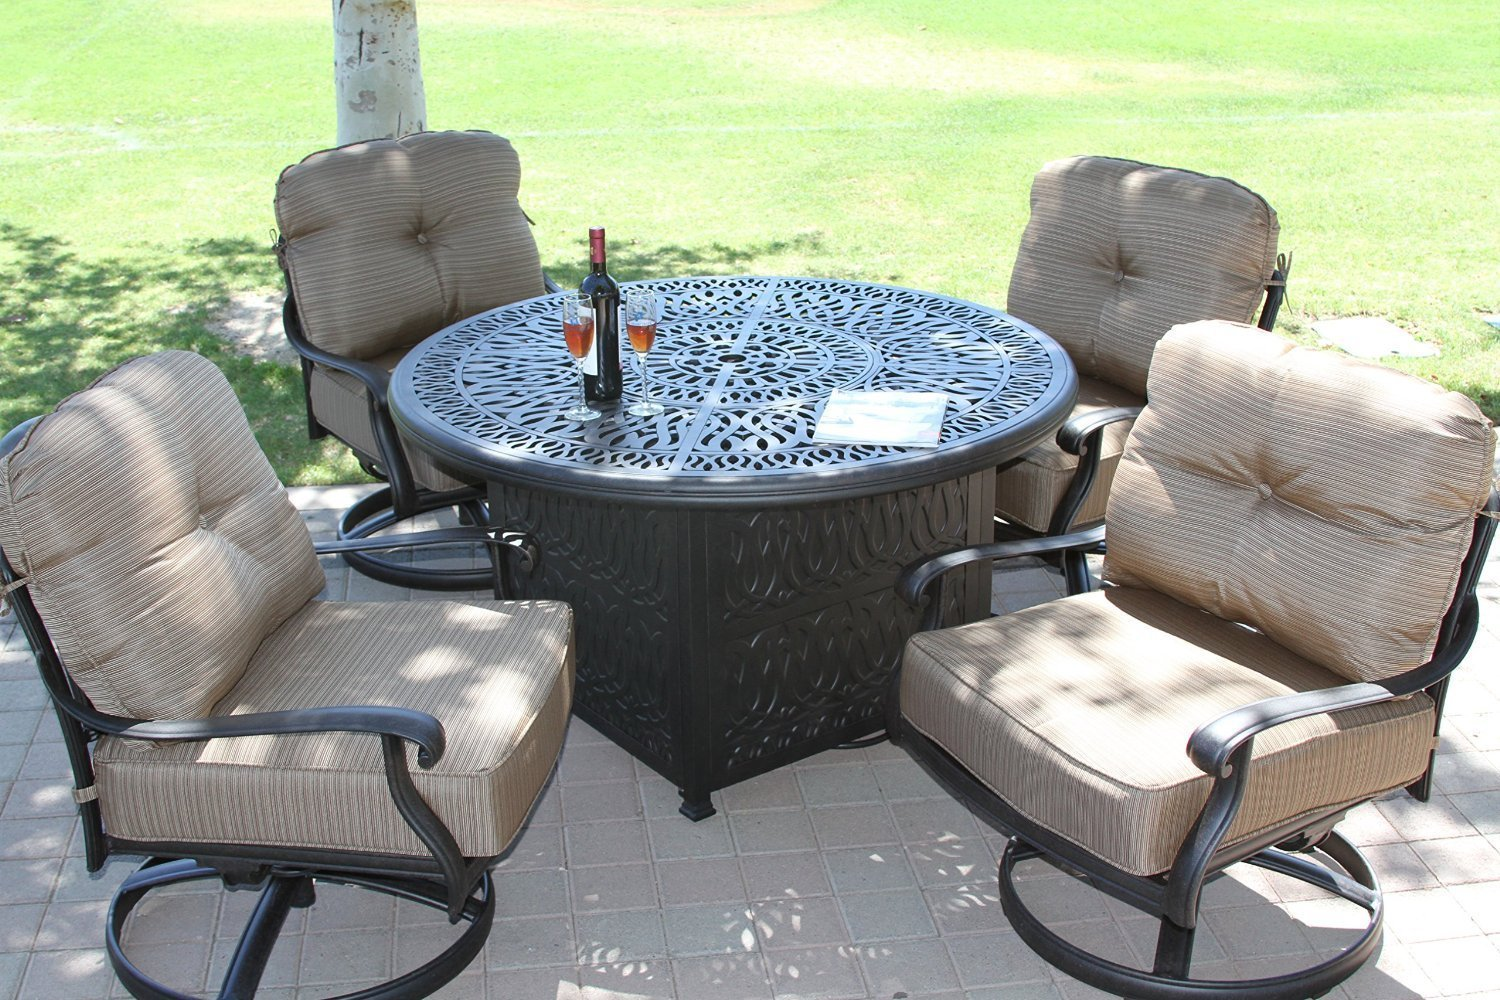 "Elizabeth Cast Aluminum Powder Coated 5pc Deep Seating Set with 52"" Firepit with Enclosure Sunbrella Fabric - Antique Bronze"